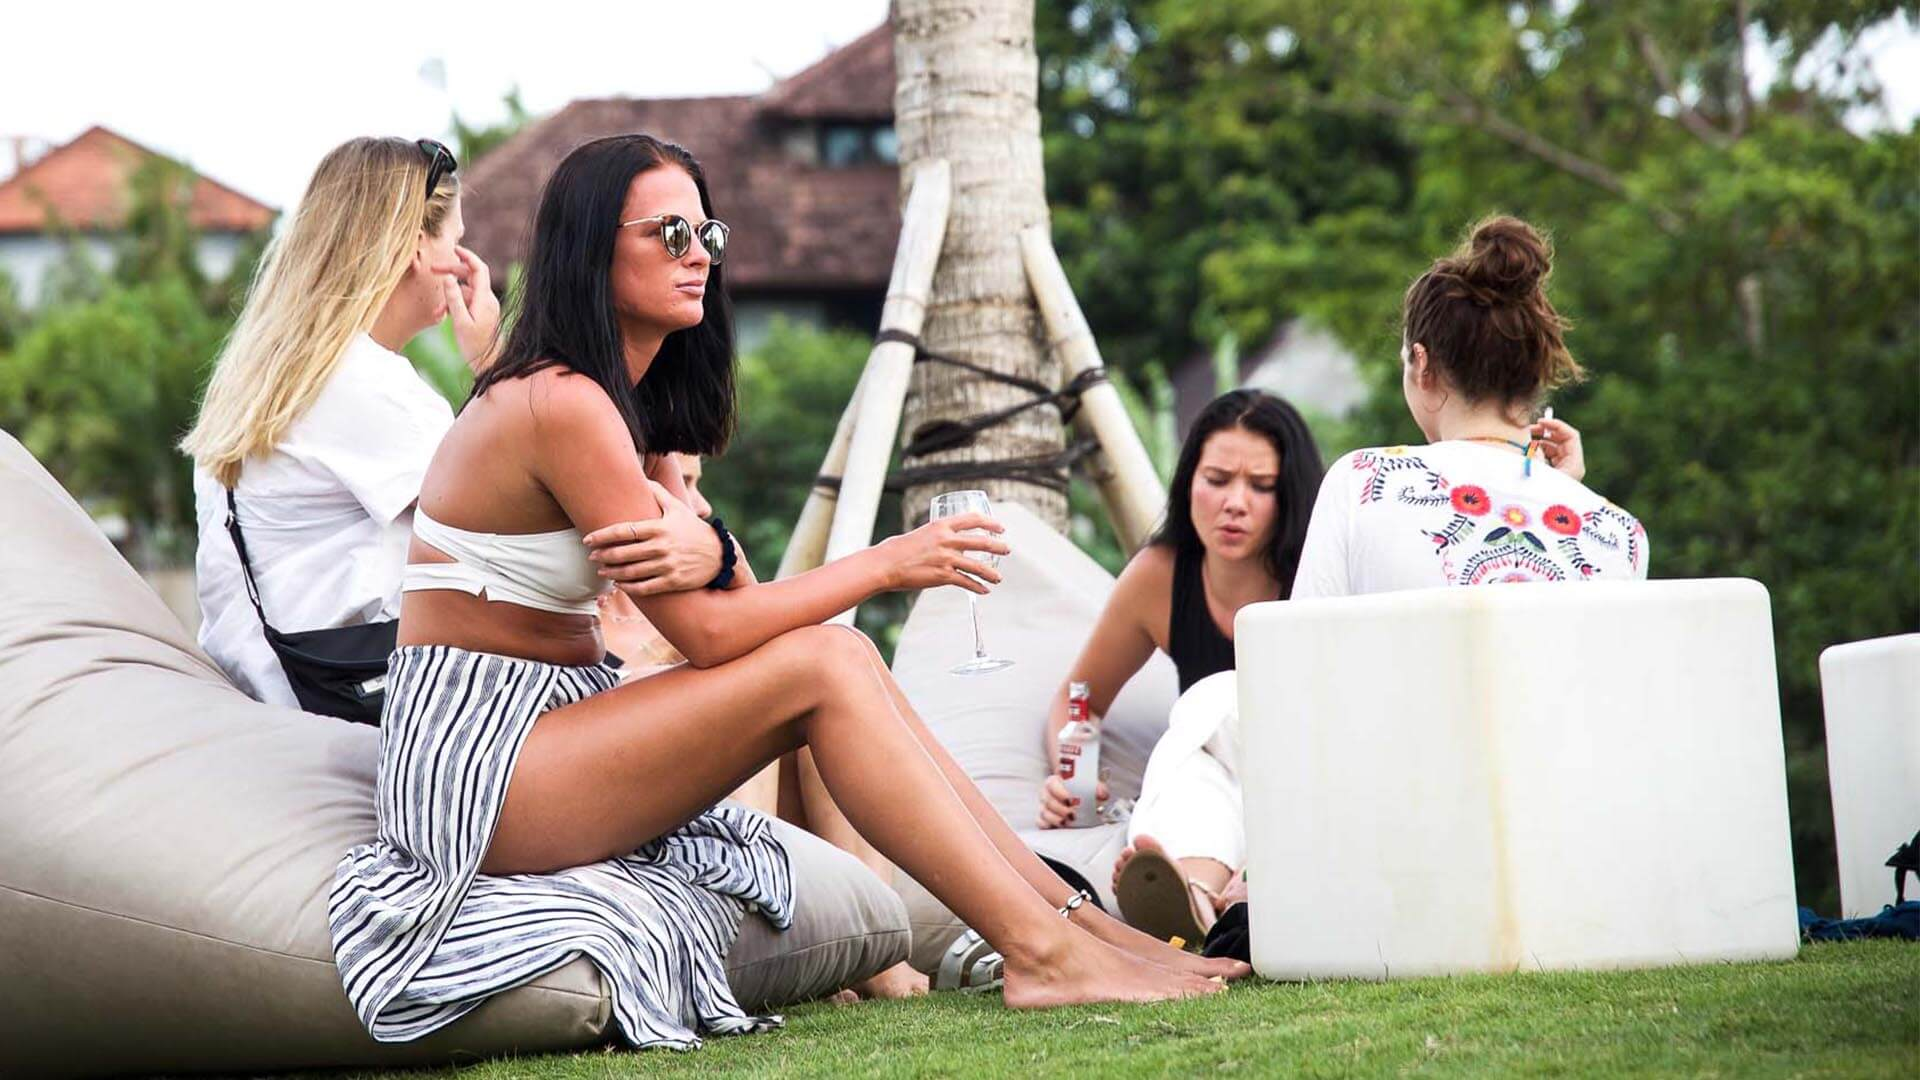 A group of girls sit on bean bags with a glass of drink in their hands